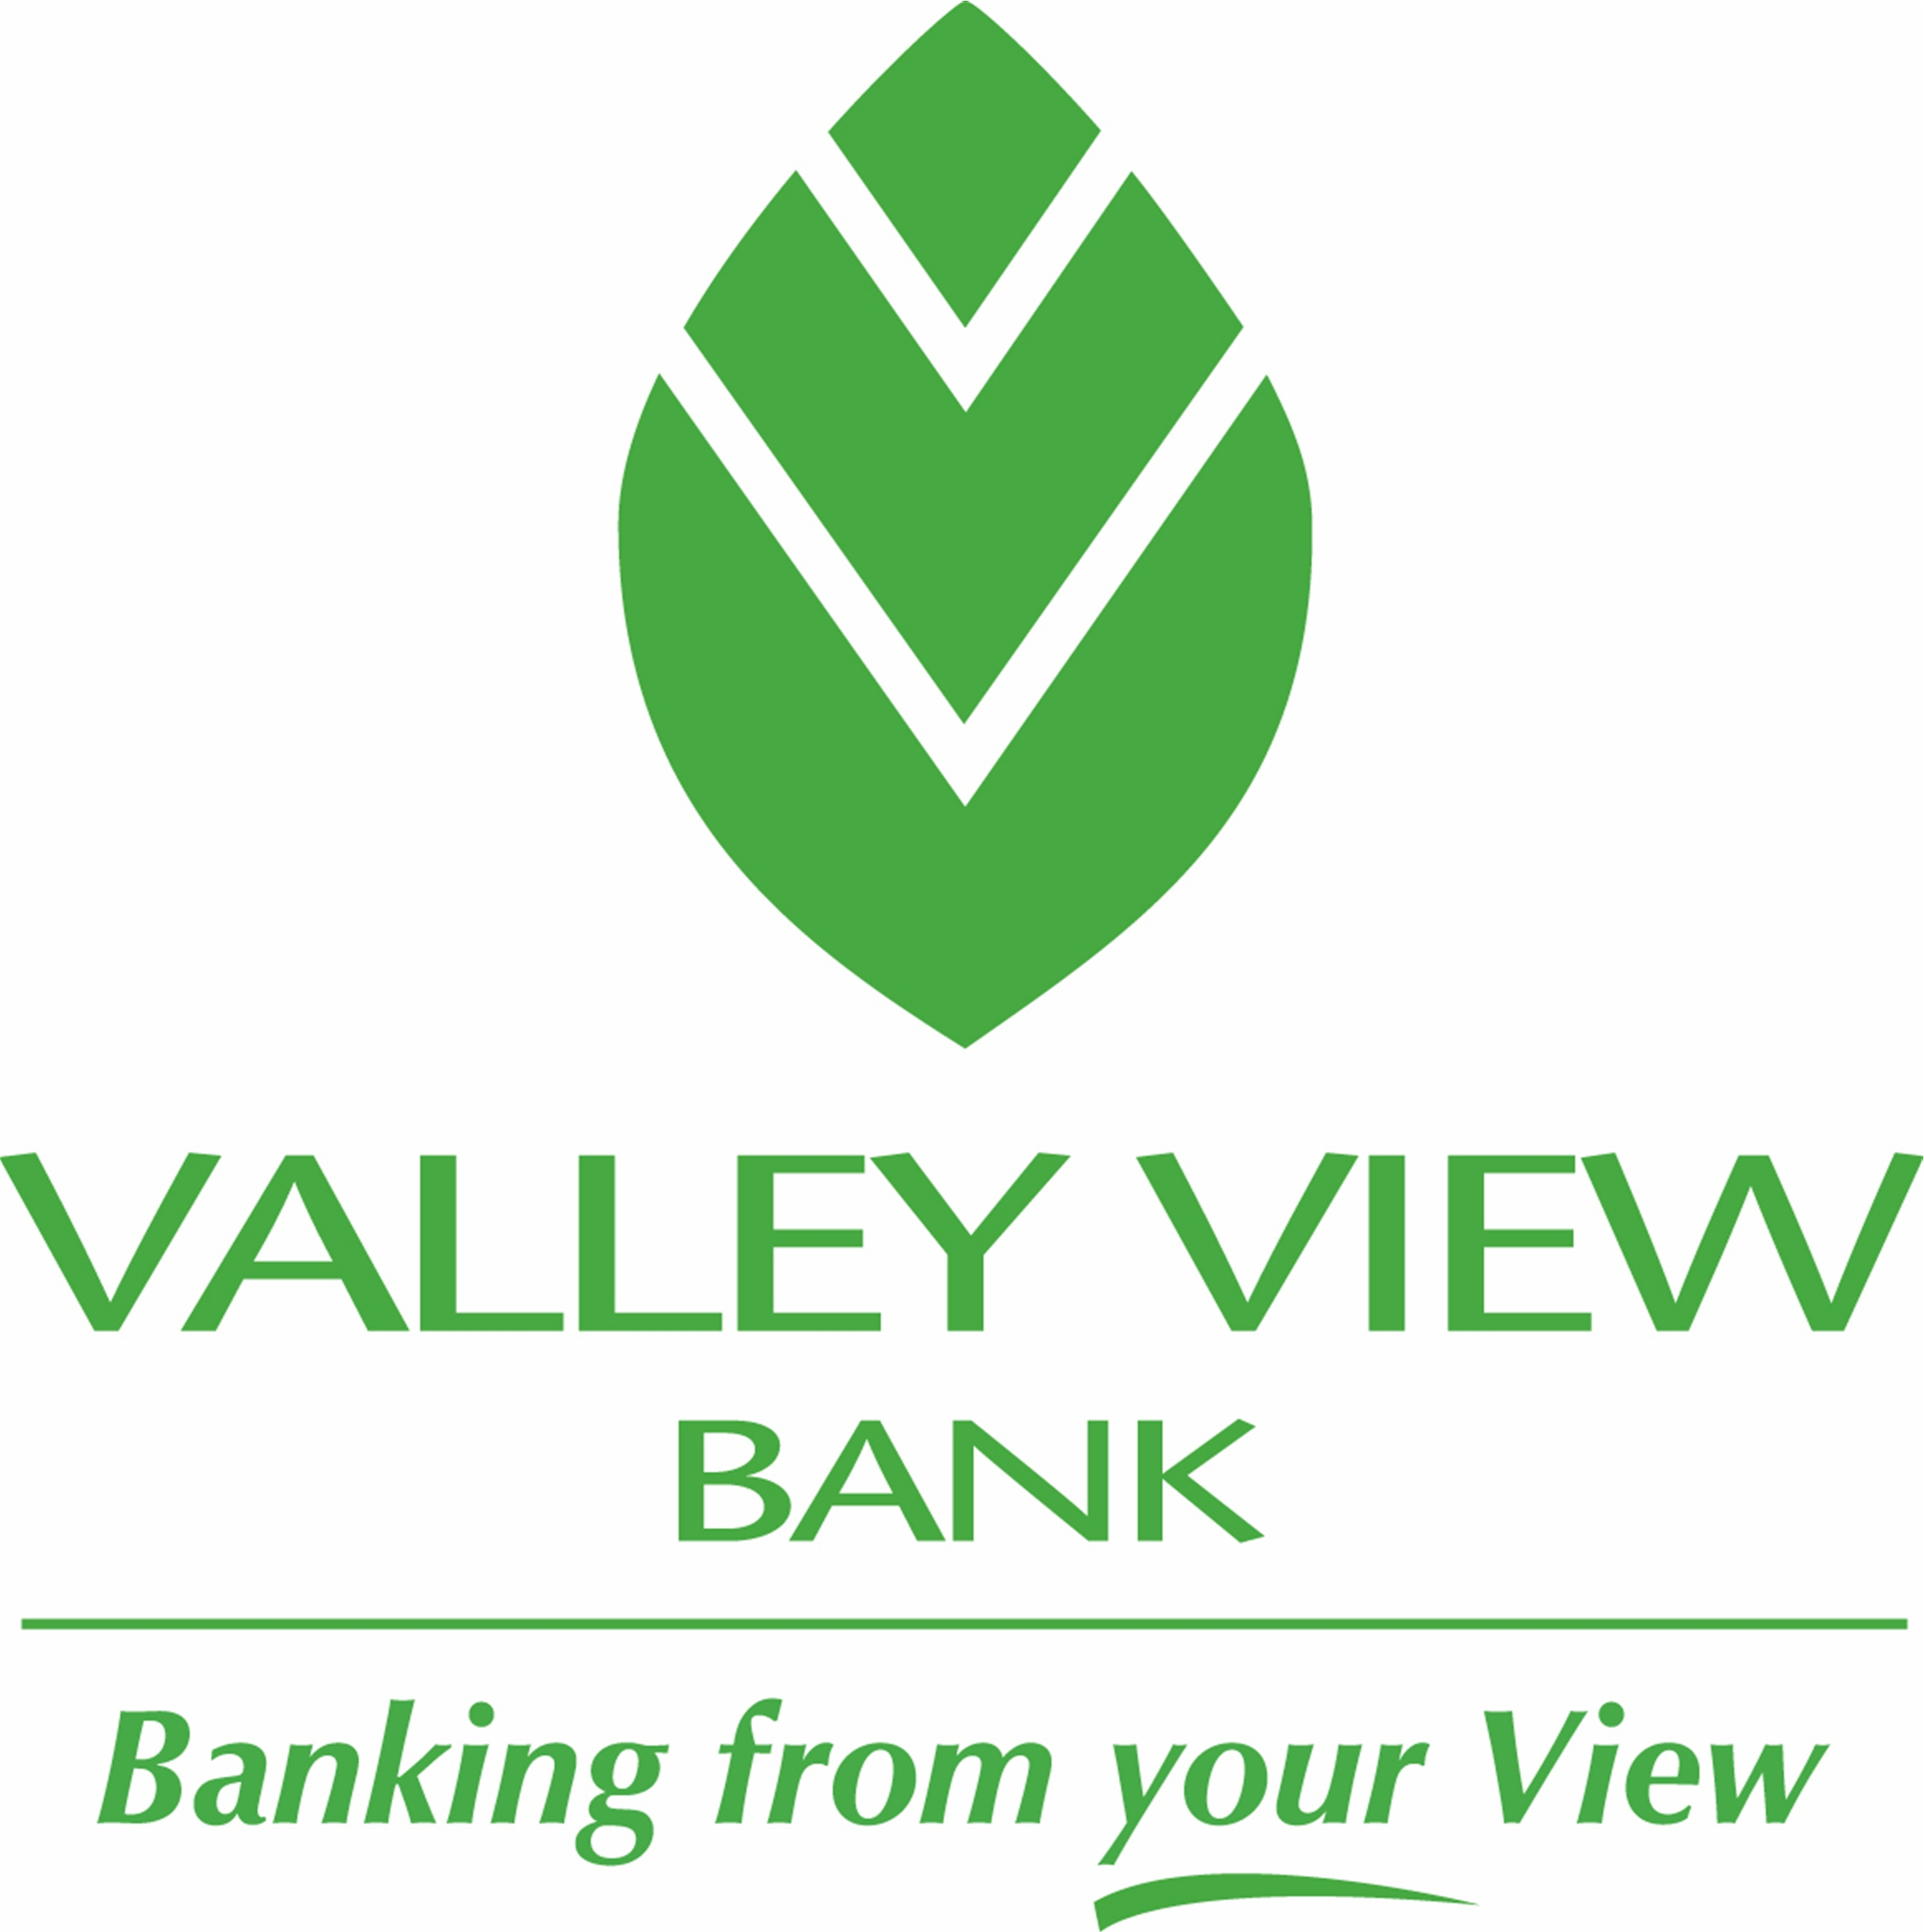 Valley View Bank